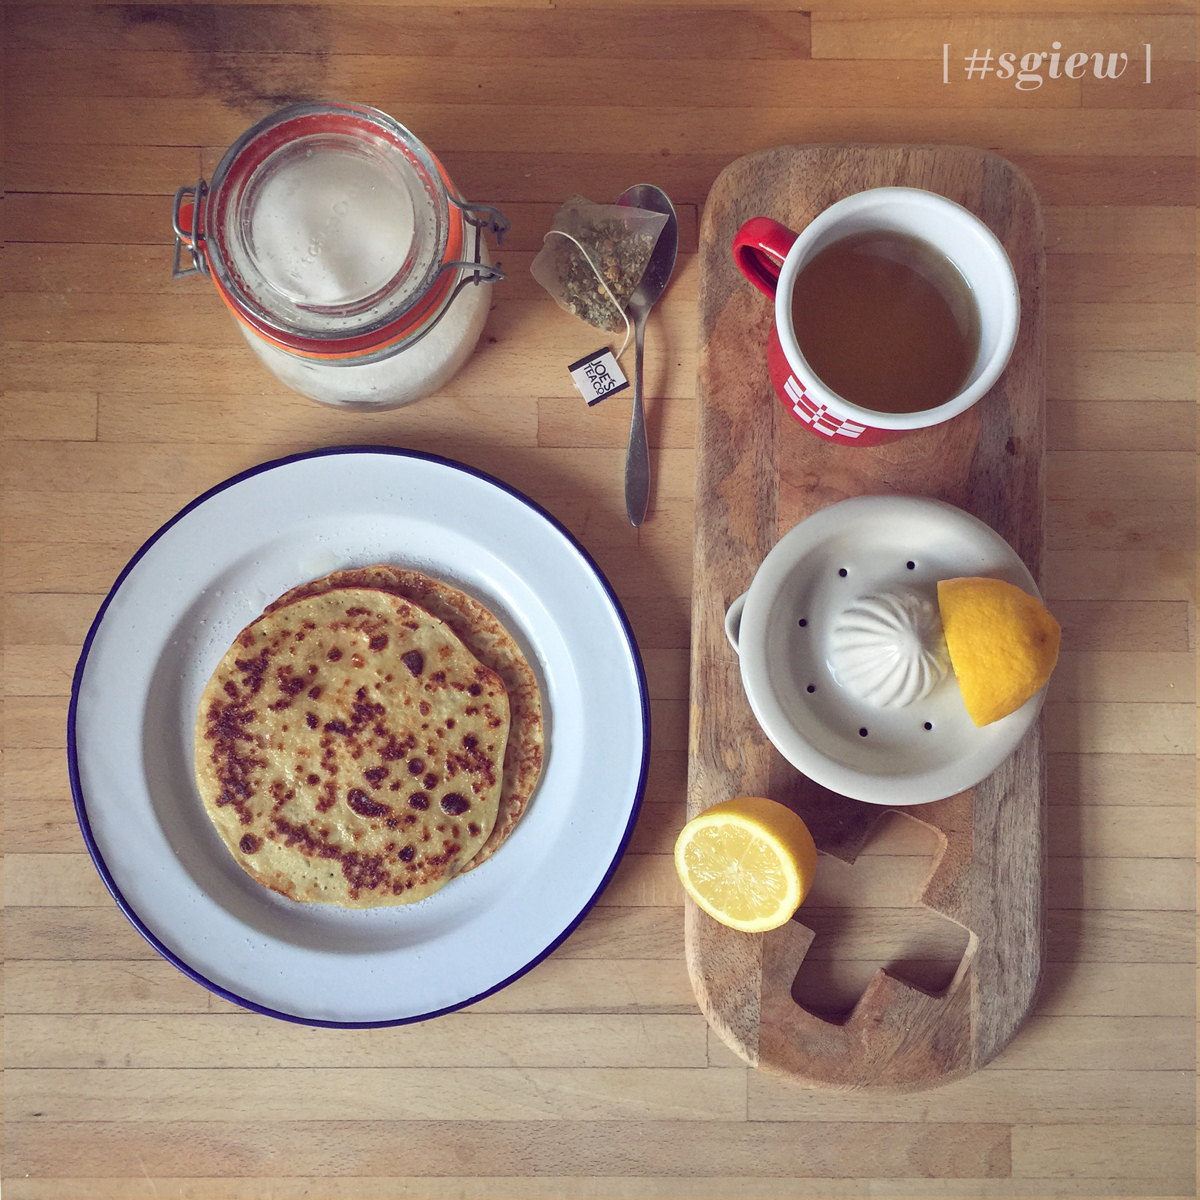 sgiew-time-for-tea-pancakes